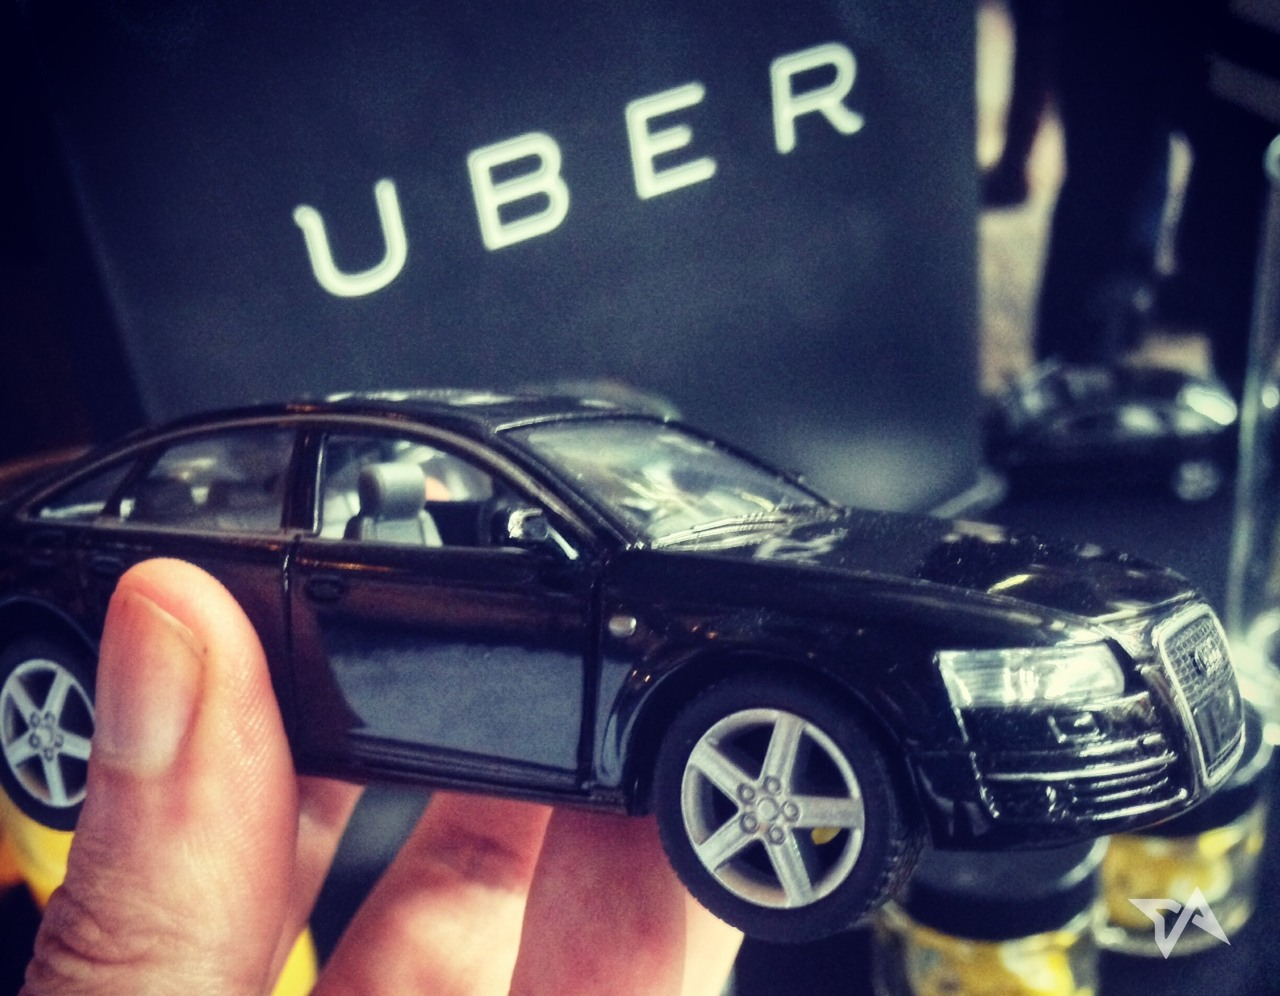 Uber-picks-a-Chinese-name-as-it-officially-launches-in-China-2